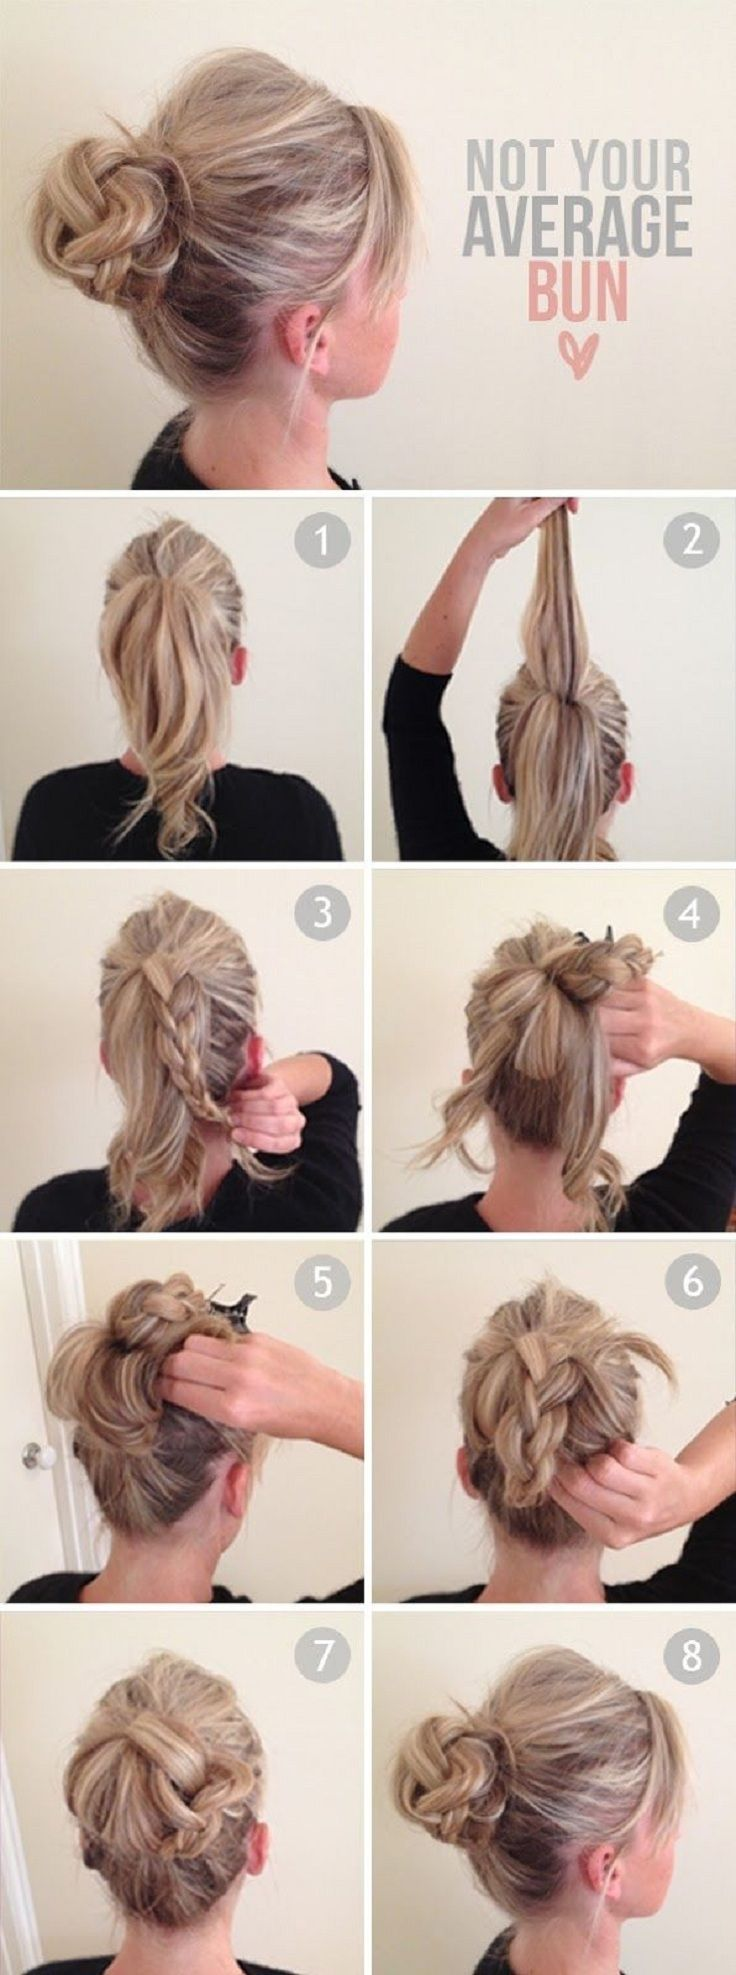 Cute Braided Bun Hairstyles For Short Hair : Amazing double braid bun hairstyles pretty designs